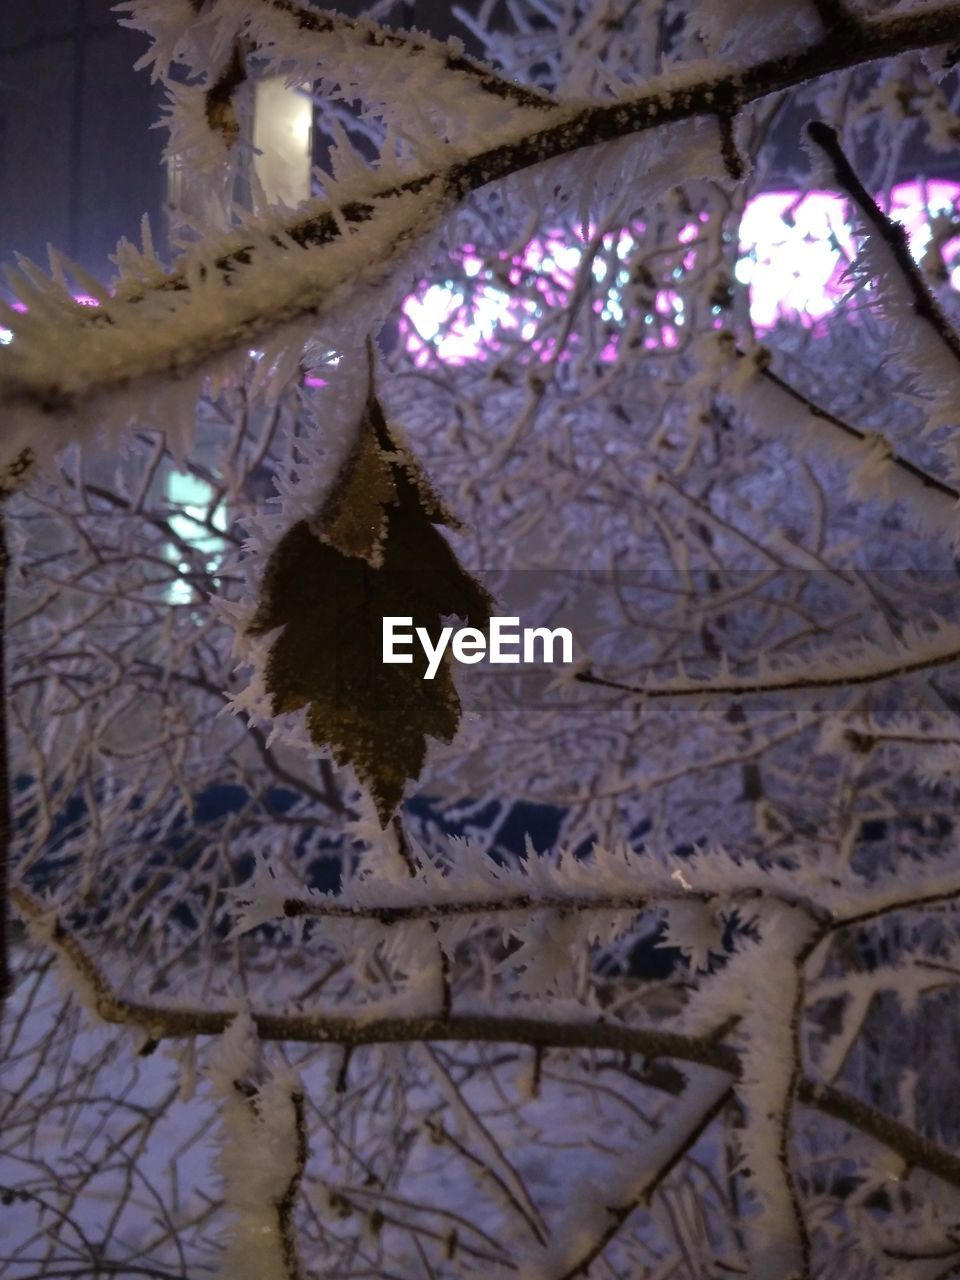 tree, plant, branch, no people, low angle view, winter, decoration, snow, cold temperature, focus on foreground, nature, close-up, hanging, celebration, beauty in nature, day, outdoors, growth, ceiling